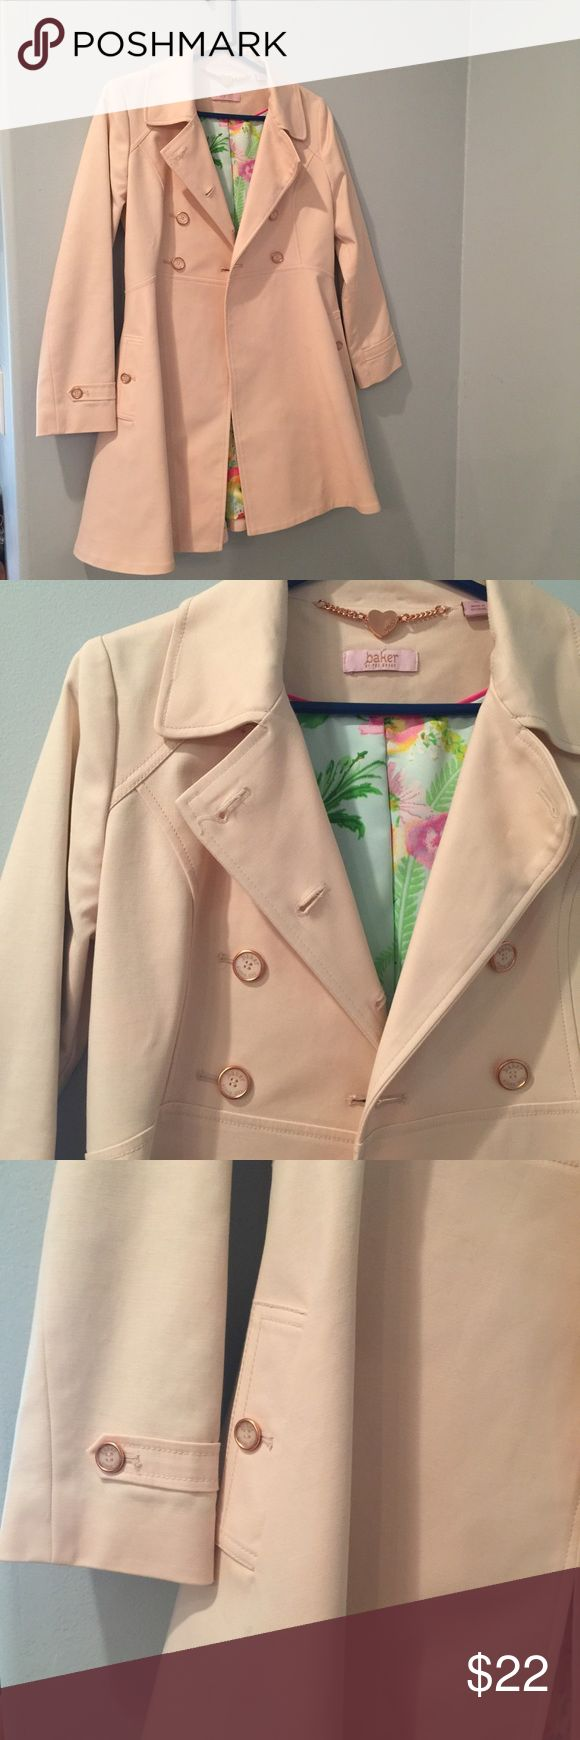 Ted Baker girls trench 💖 PERFECT CONDITION! WORN ONCE! So cute! Girls XL but also fits women S! Baker by Ted Baker Jackets & Coats Trench Coats